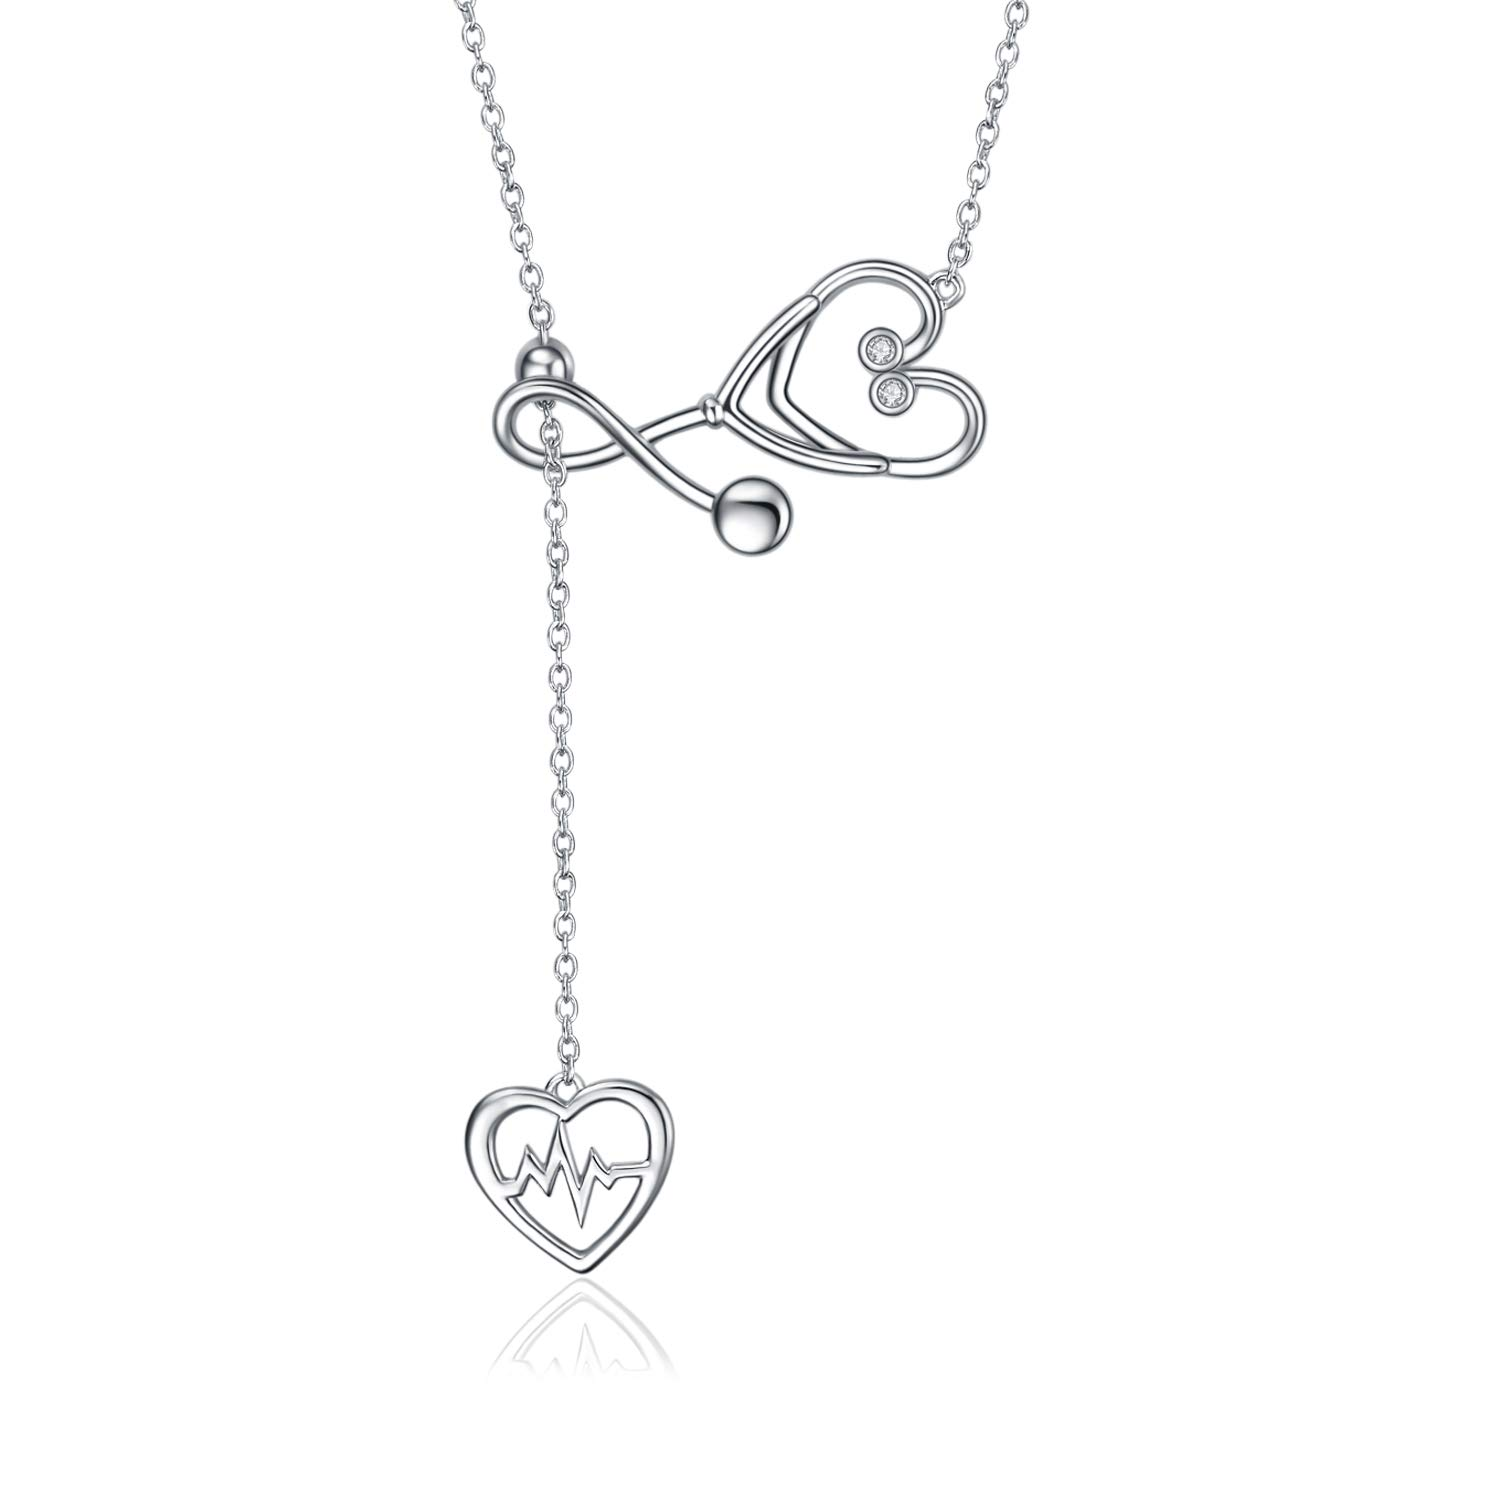 YFN Sterling Silver Stethoscope Jewelry Heartbeat EKG Lariat Y Necklace for Women Doctor Nurse Gift (Stethoscope Lariat Necklace) by YFN